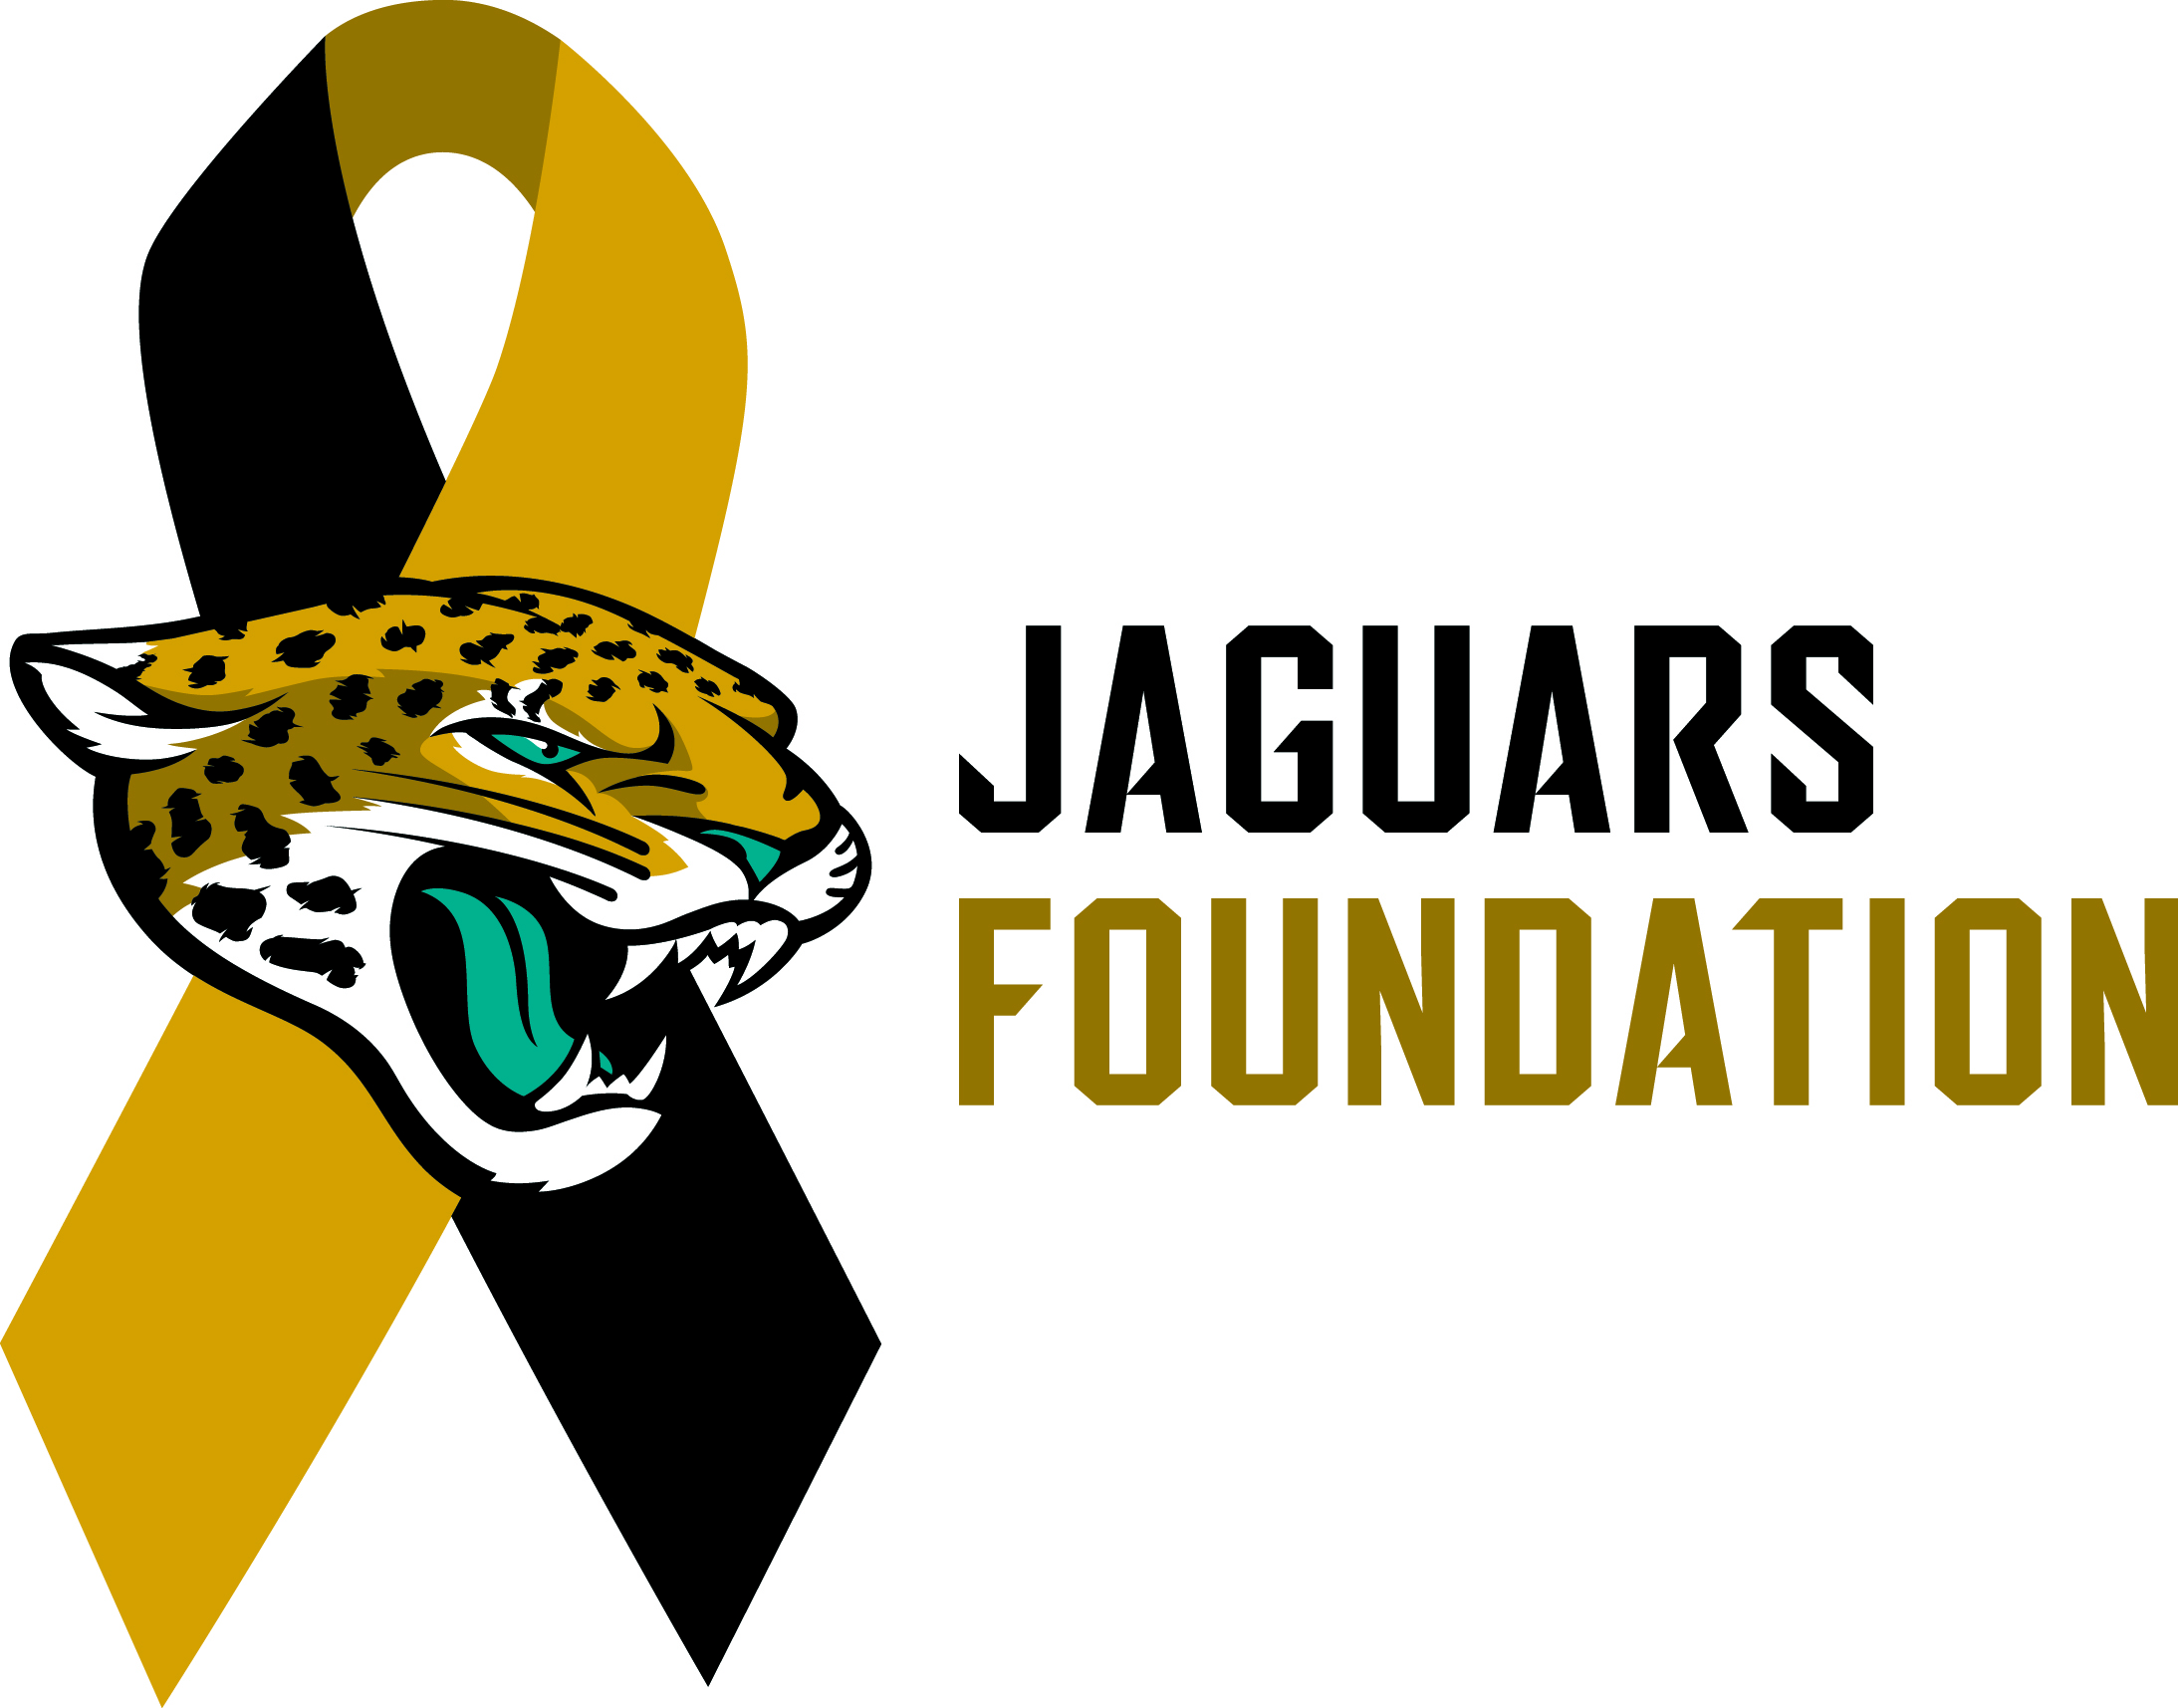 Jaguars Foundation Logo.jpg